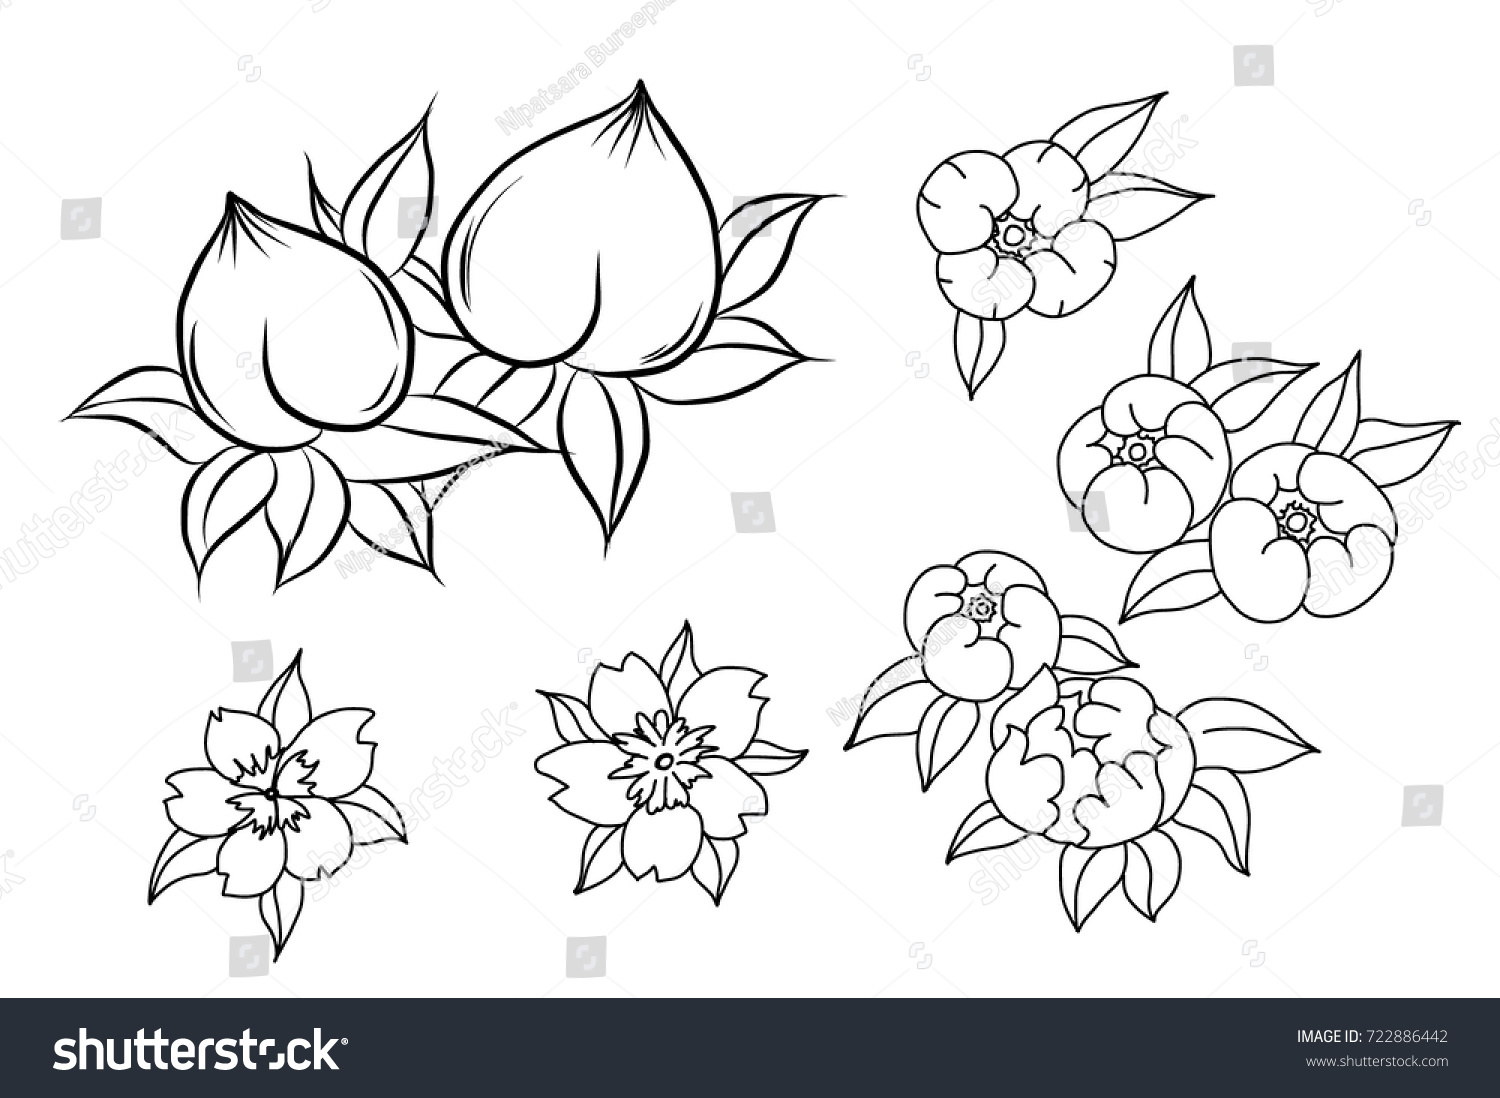 Black White Peach Flower Tattoo Chinese Flower Stock Vector Royalty